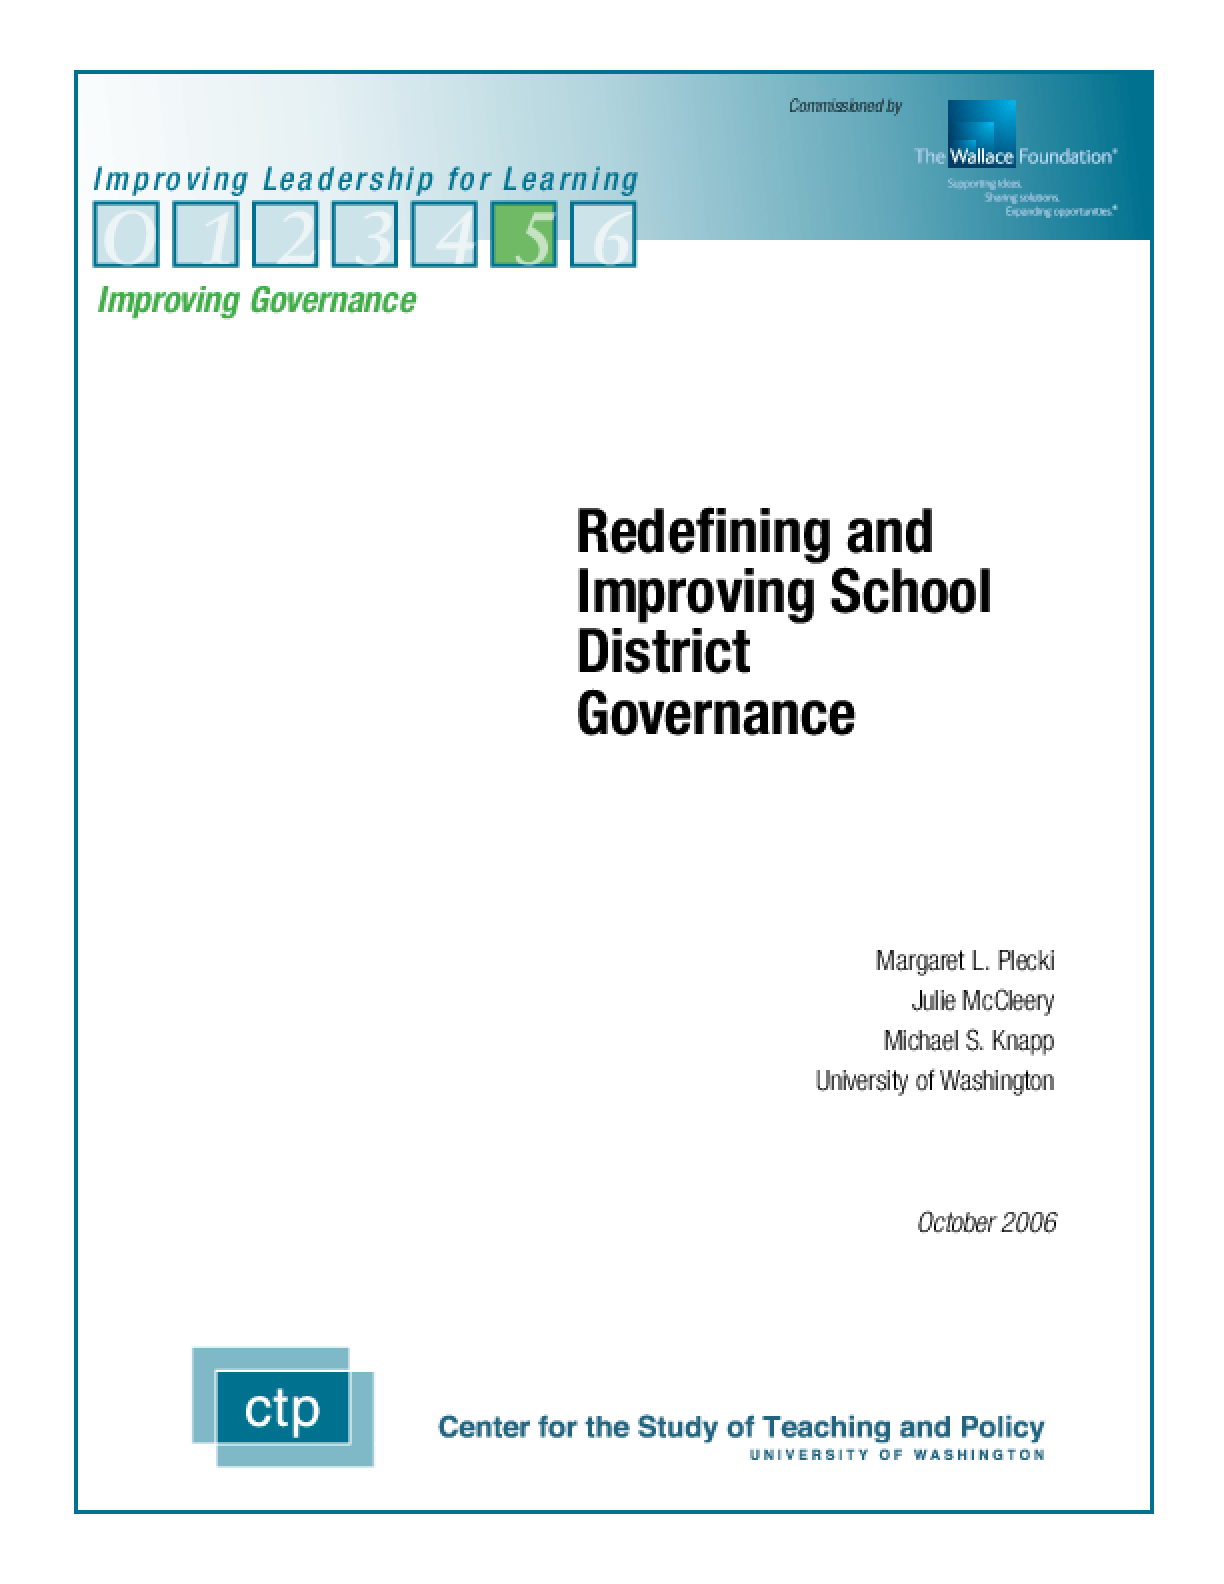 Redefining and Improving School District Governance